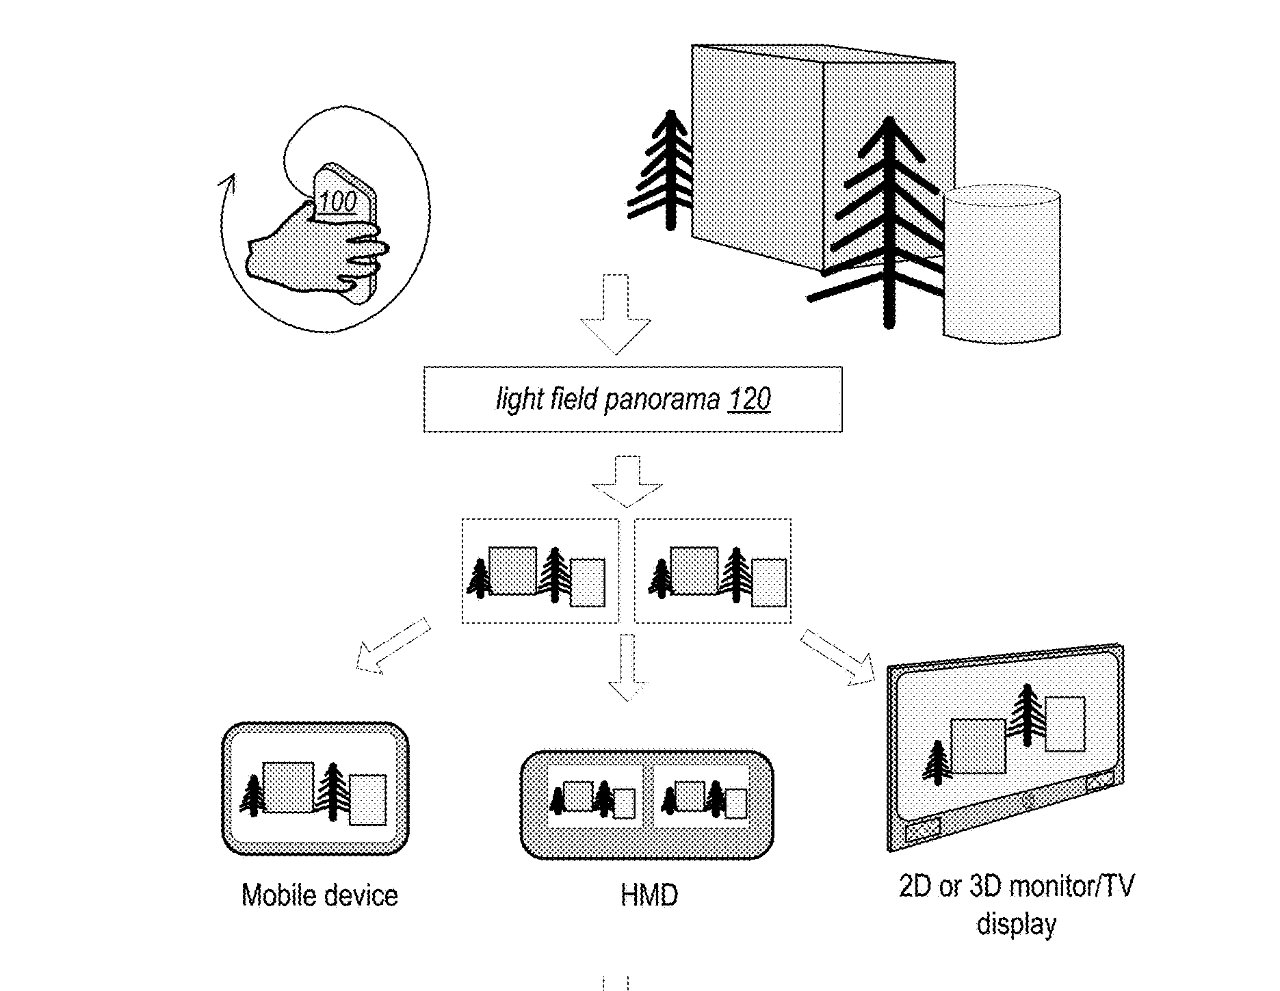 Edited detail from the patent showing how gestures can capture information that is then later relayed for display as AR